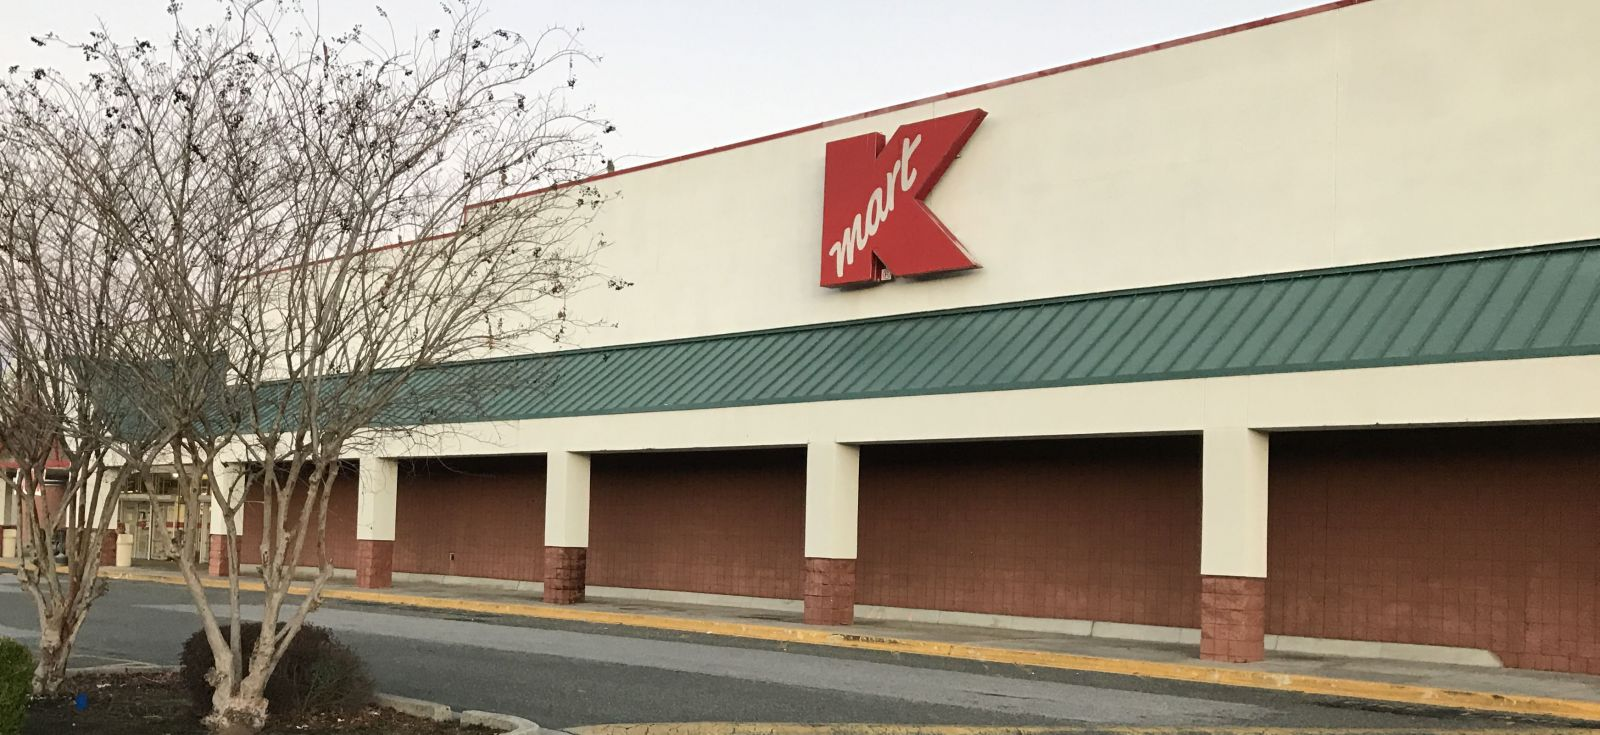 The Kmart store at 8571 Rivers Ave. in North Charleston will close at the end of March. (Photo/Ashley Heffernan)